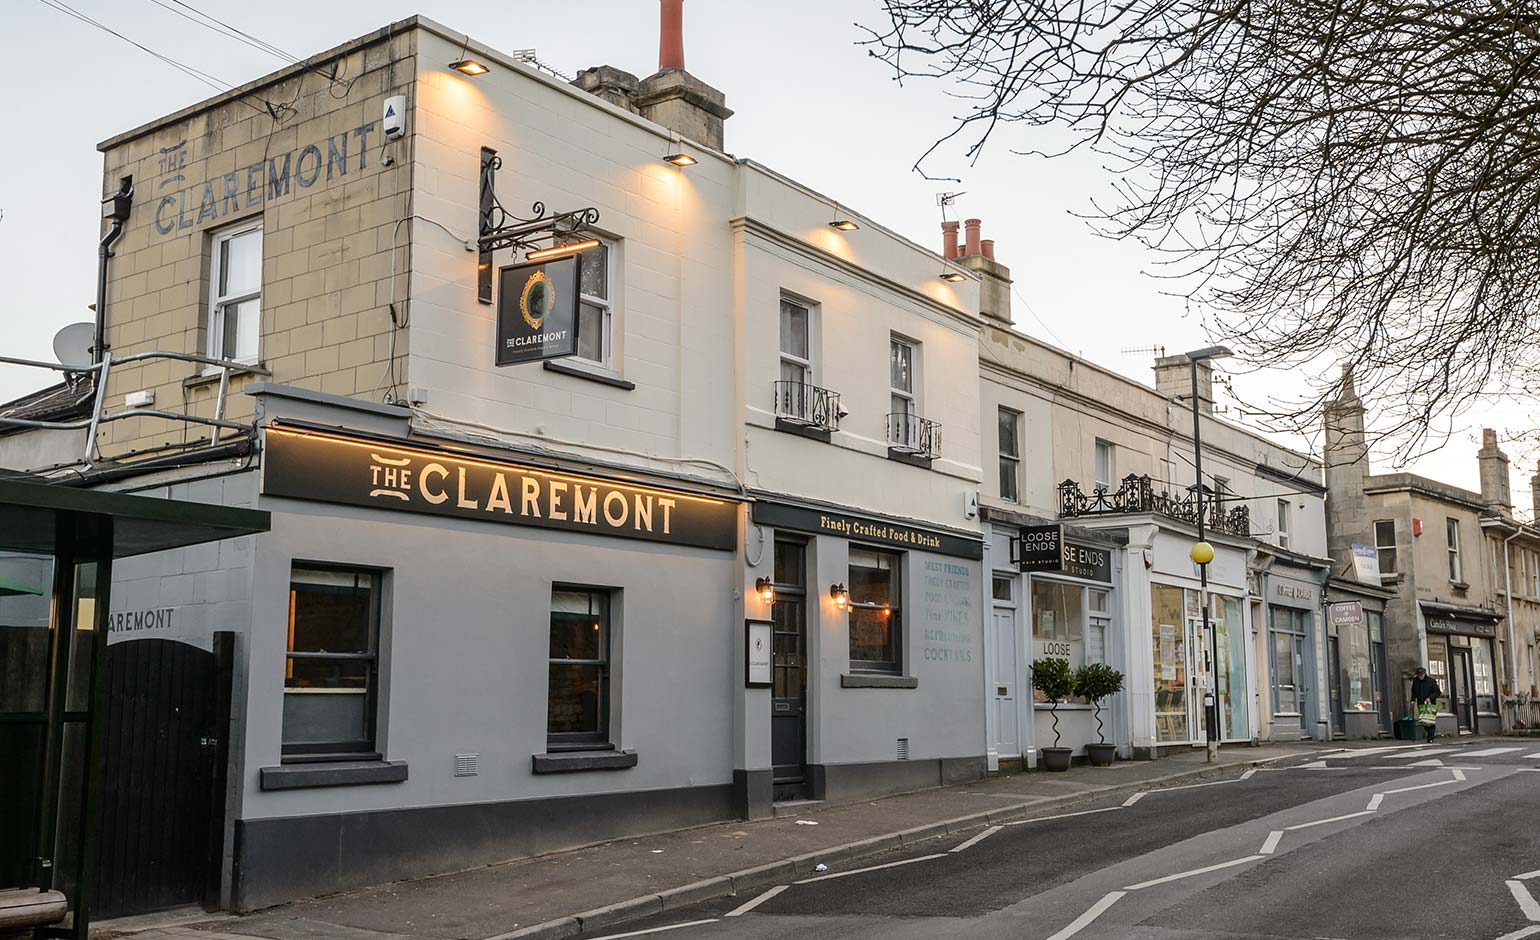 New name and lease of life for The Claremont following £380k transformation